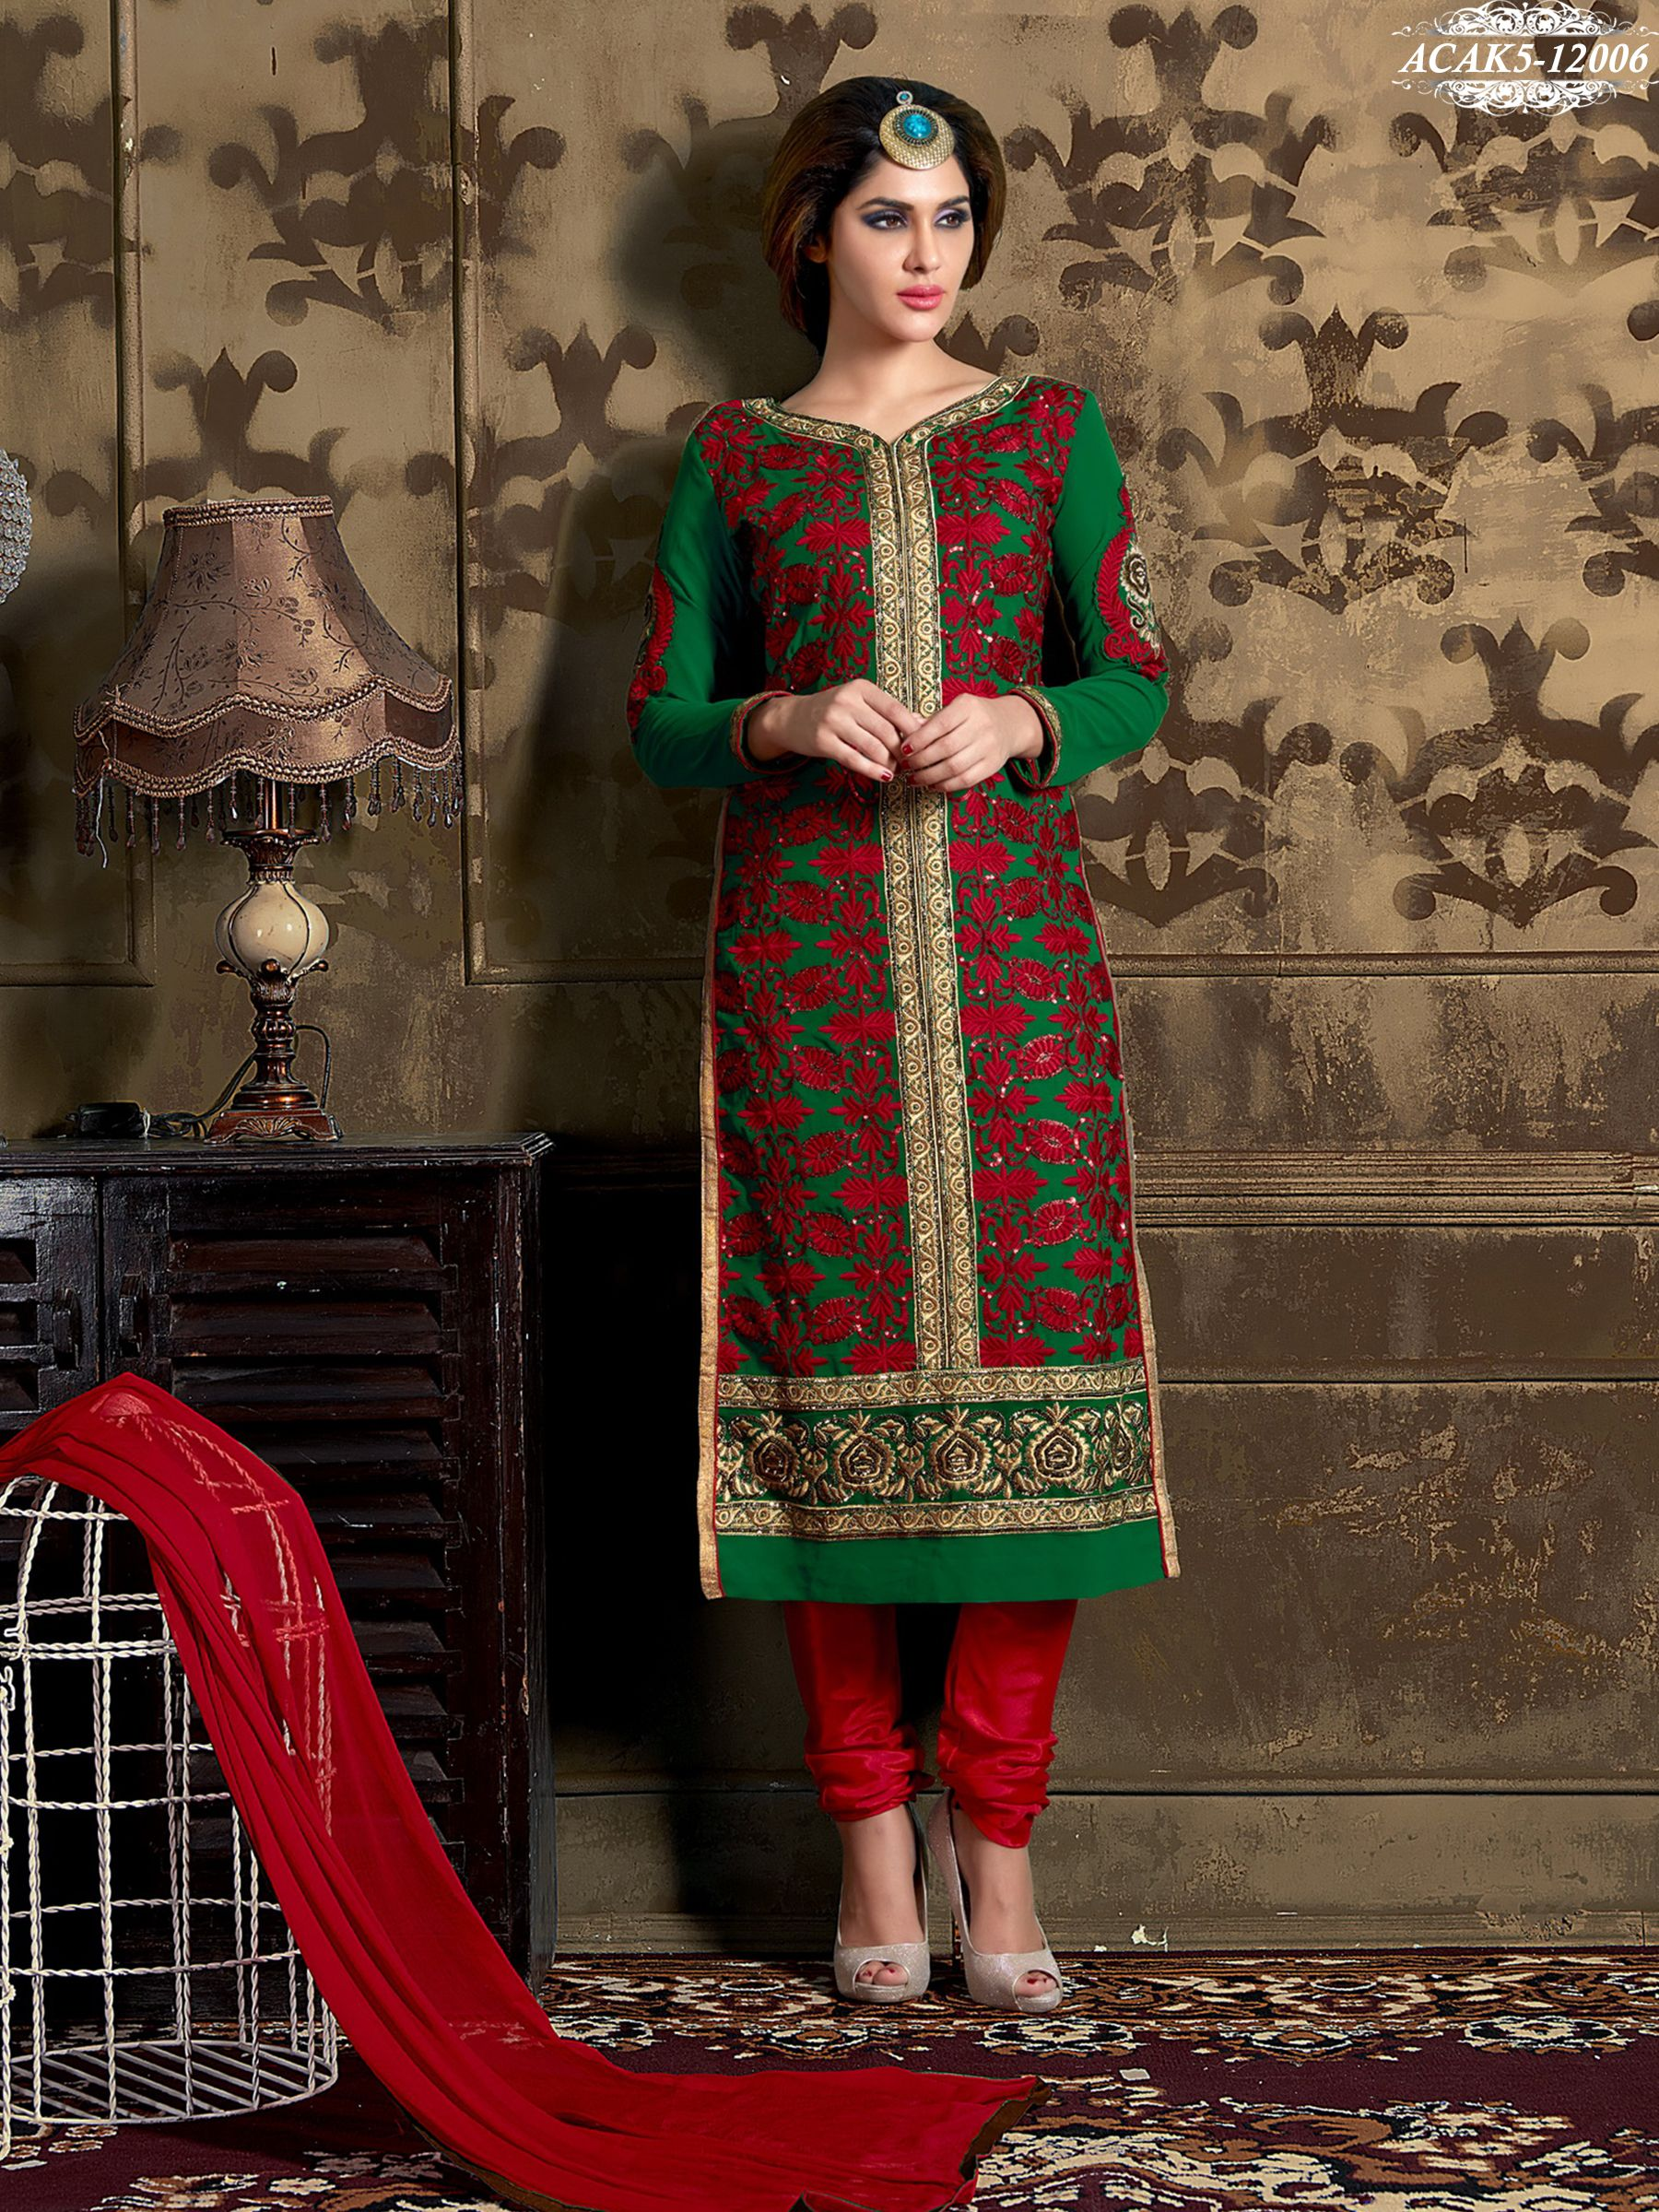 956e3a076 Green Colour Georgette Embroidered Semi Stitched Salwar Suit.. Shop Now   www.glamyshop.com